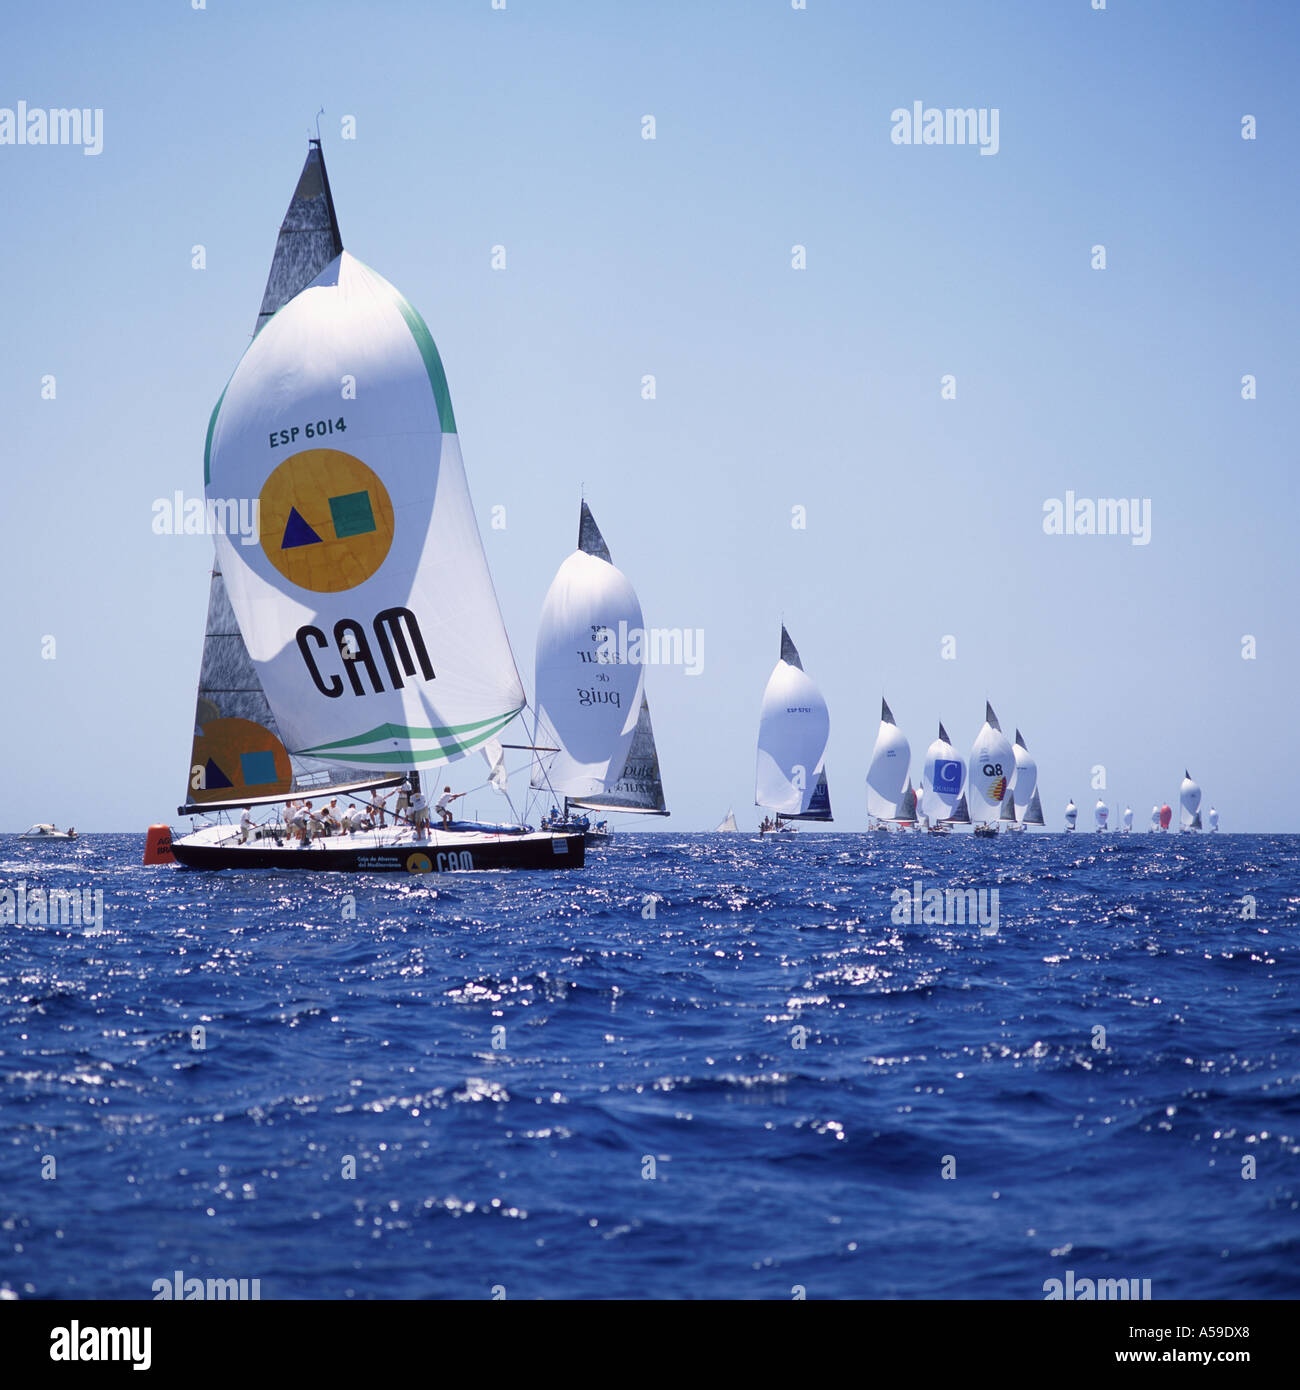 CAM in IMS 500 category rounding buoy during the 22nd Copa Del Rey Kings Cup Regatta 2003 in the Bay of Palma de Mallorca Balear - Stock Image